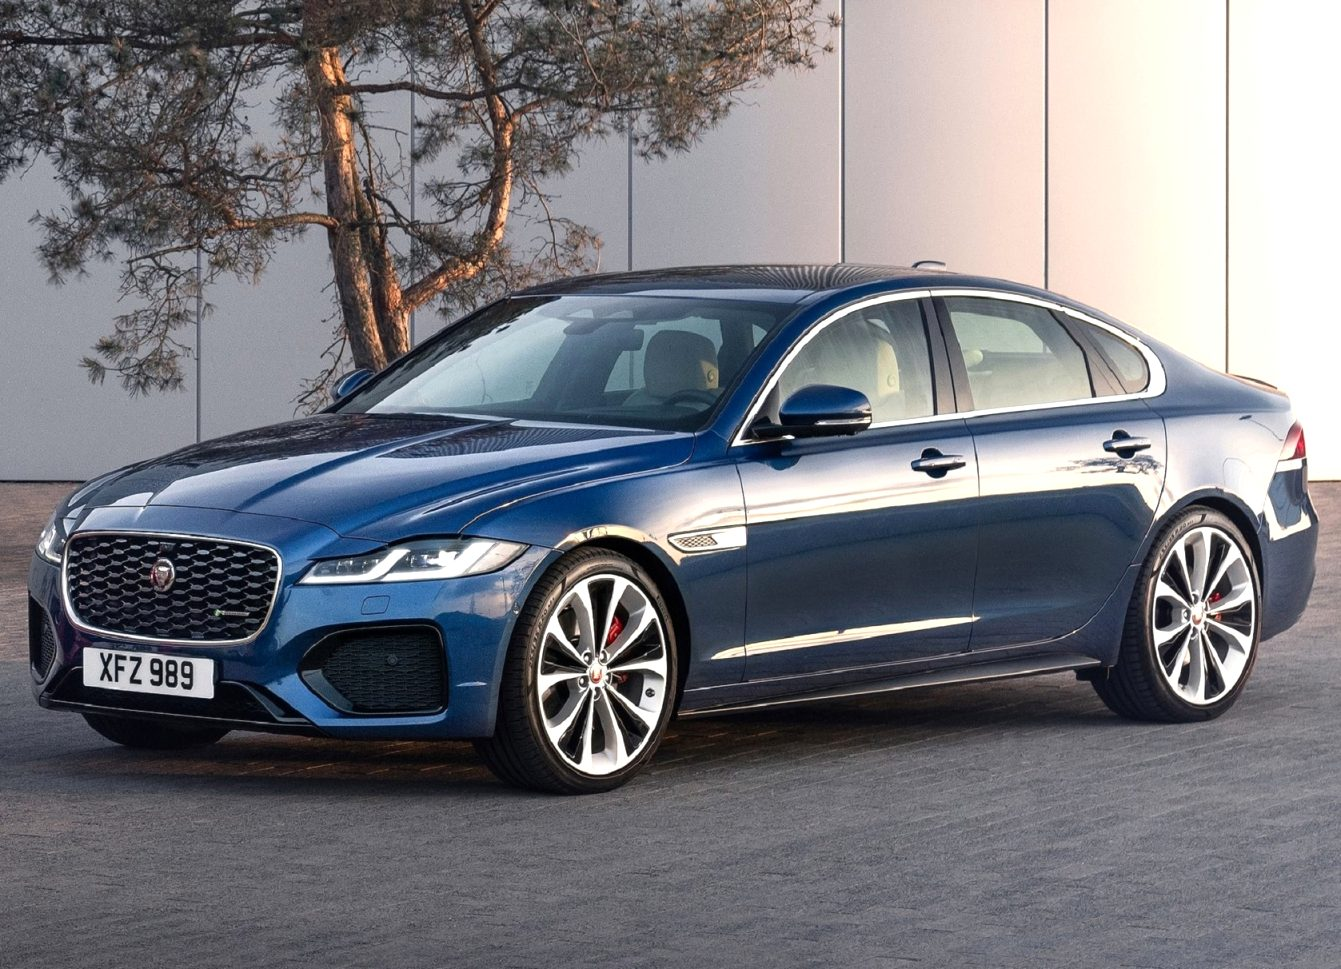 2021 jaguar xf price Redesign and Review